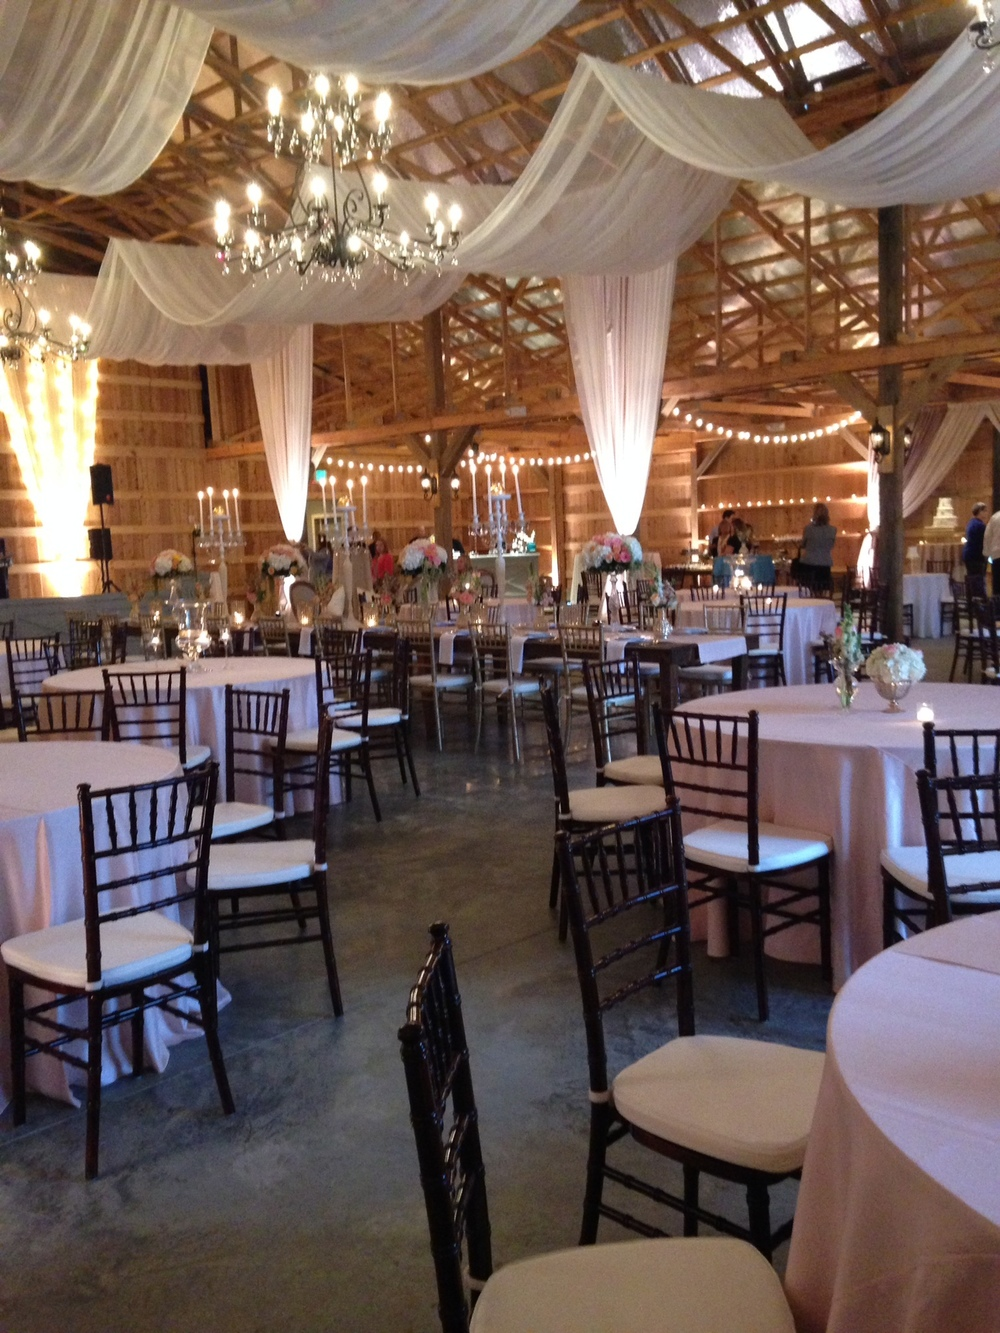 SaddleWoodsFarm4-Nashville-Barn-Wedding.jpg